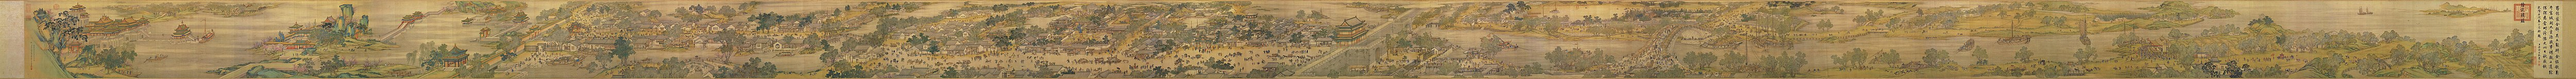 Panorama of Along the River During Qingming Festival, 18th century remake of a 12th century original by Chinese artist Zhang Zeduan; 50% resolution. Note: scroll starts from the right.